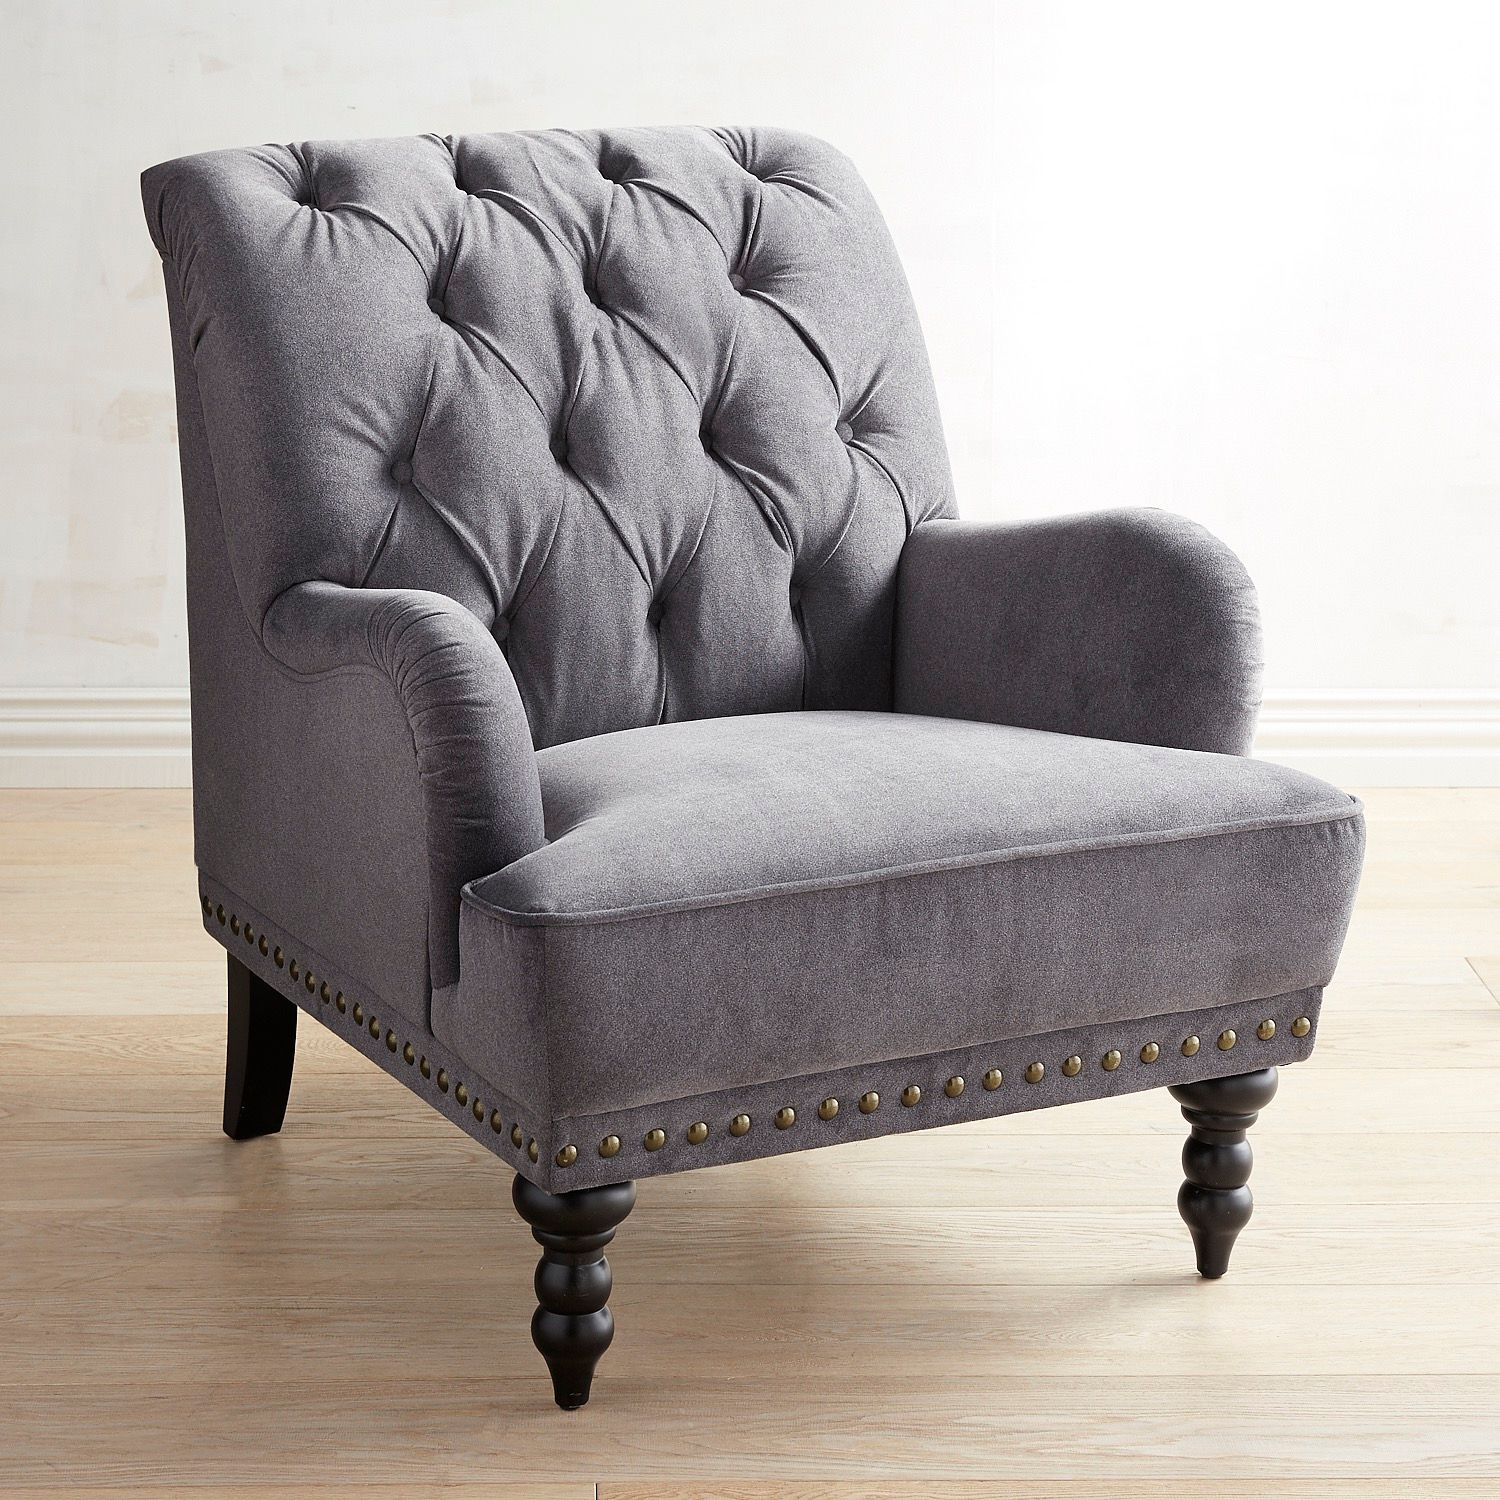 Velvet armchair and its benefits